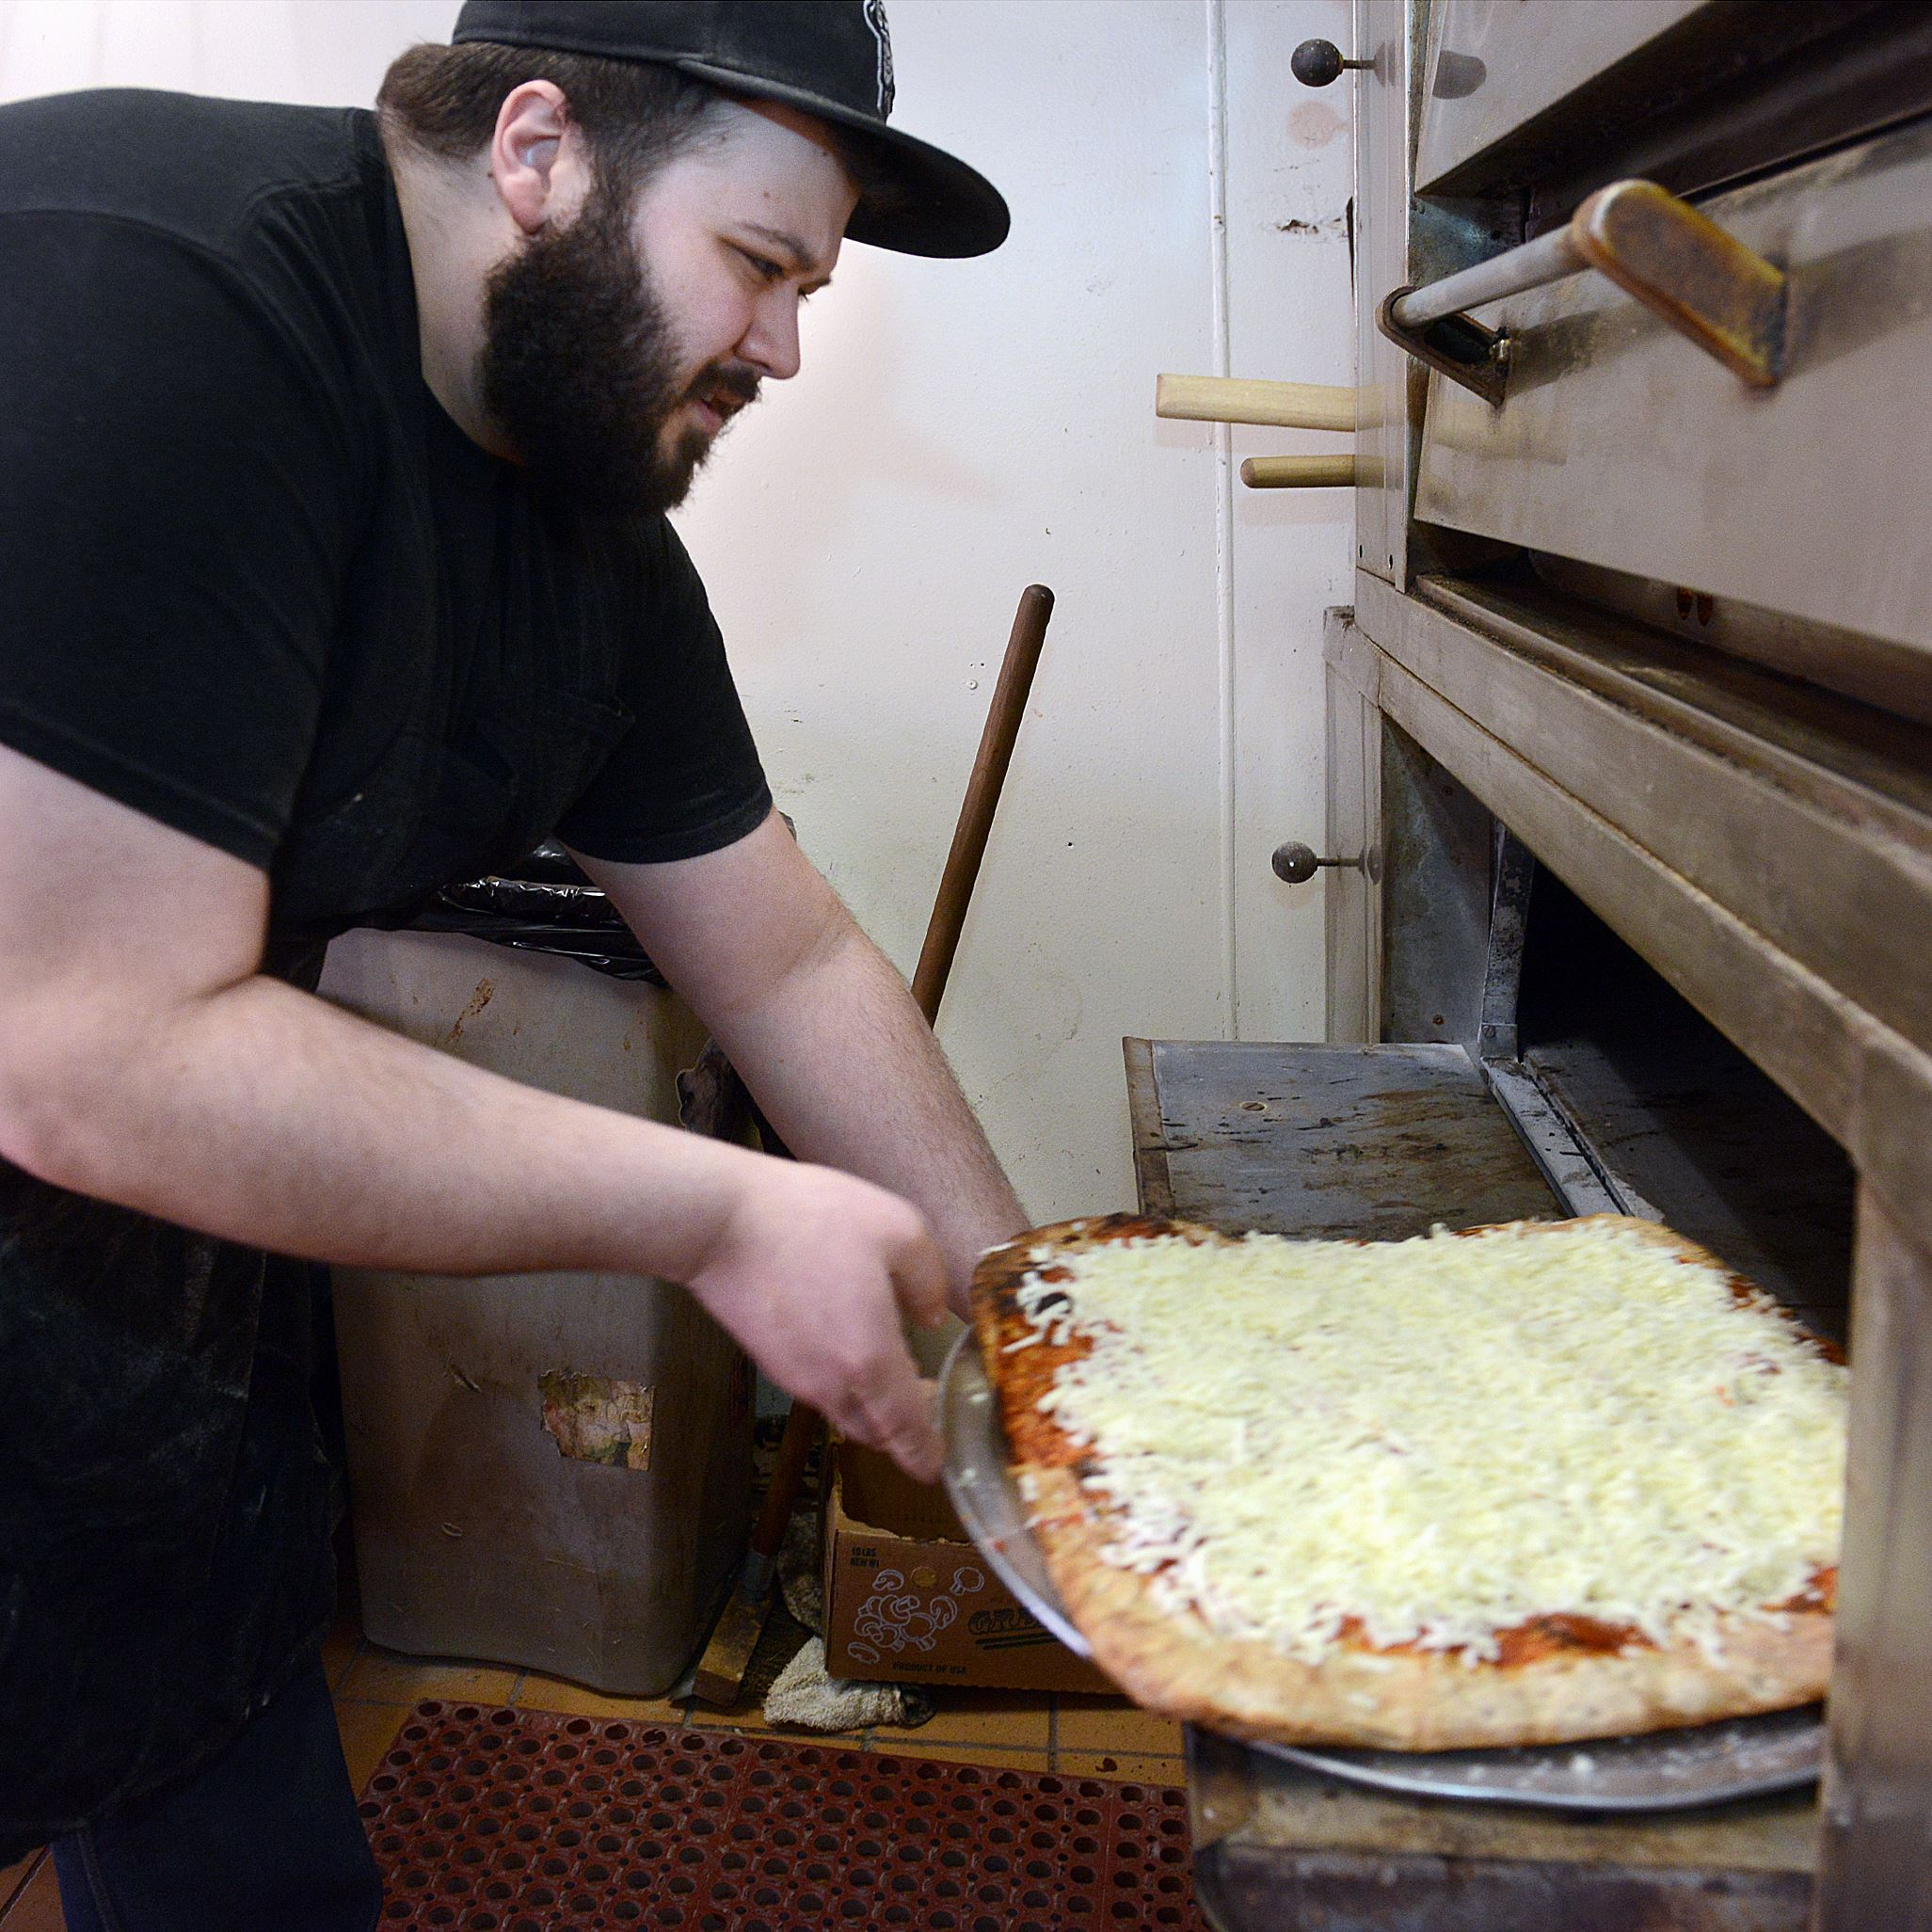 20140326radApizzaBadamoMag02-1 Anthony Badamo slides his Sicilian pizza into the oven at his shop in Mt. Lebanon shop in this 2014 photo. He'll open a second location on the North Side later this year.